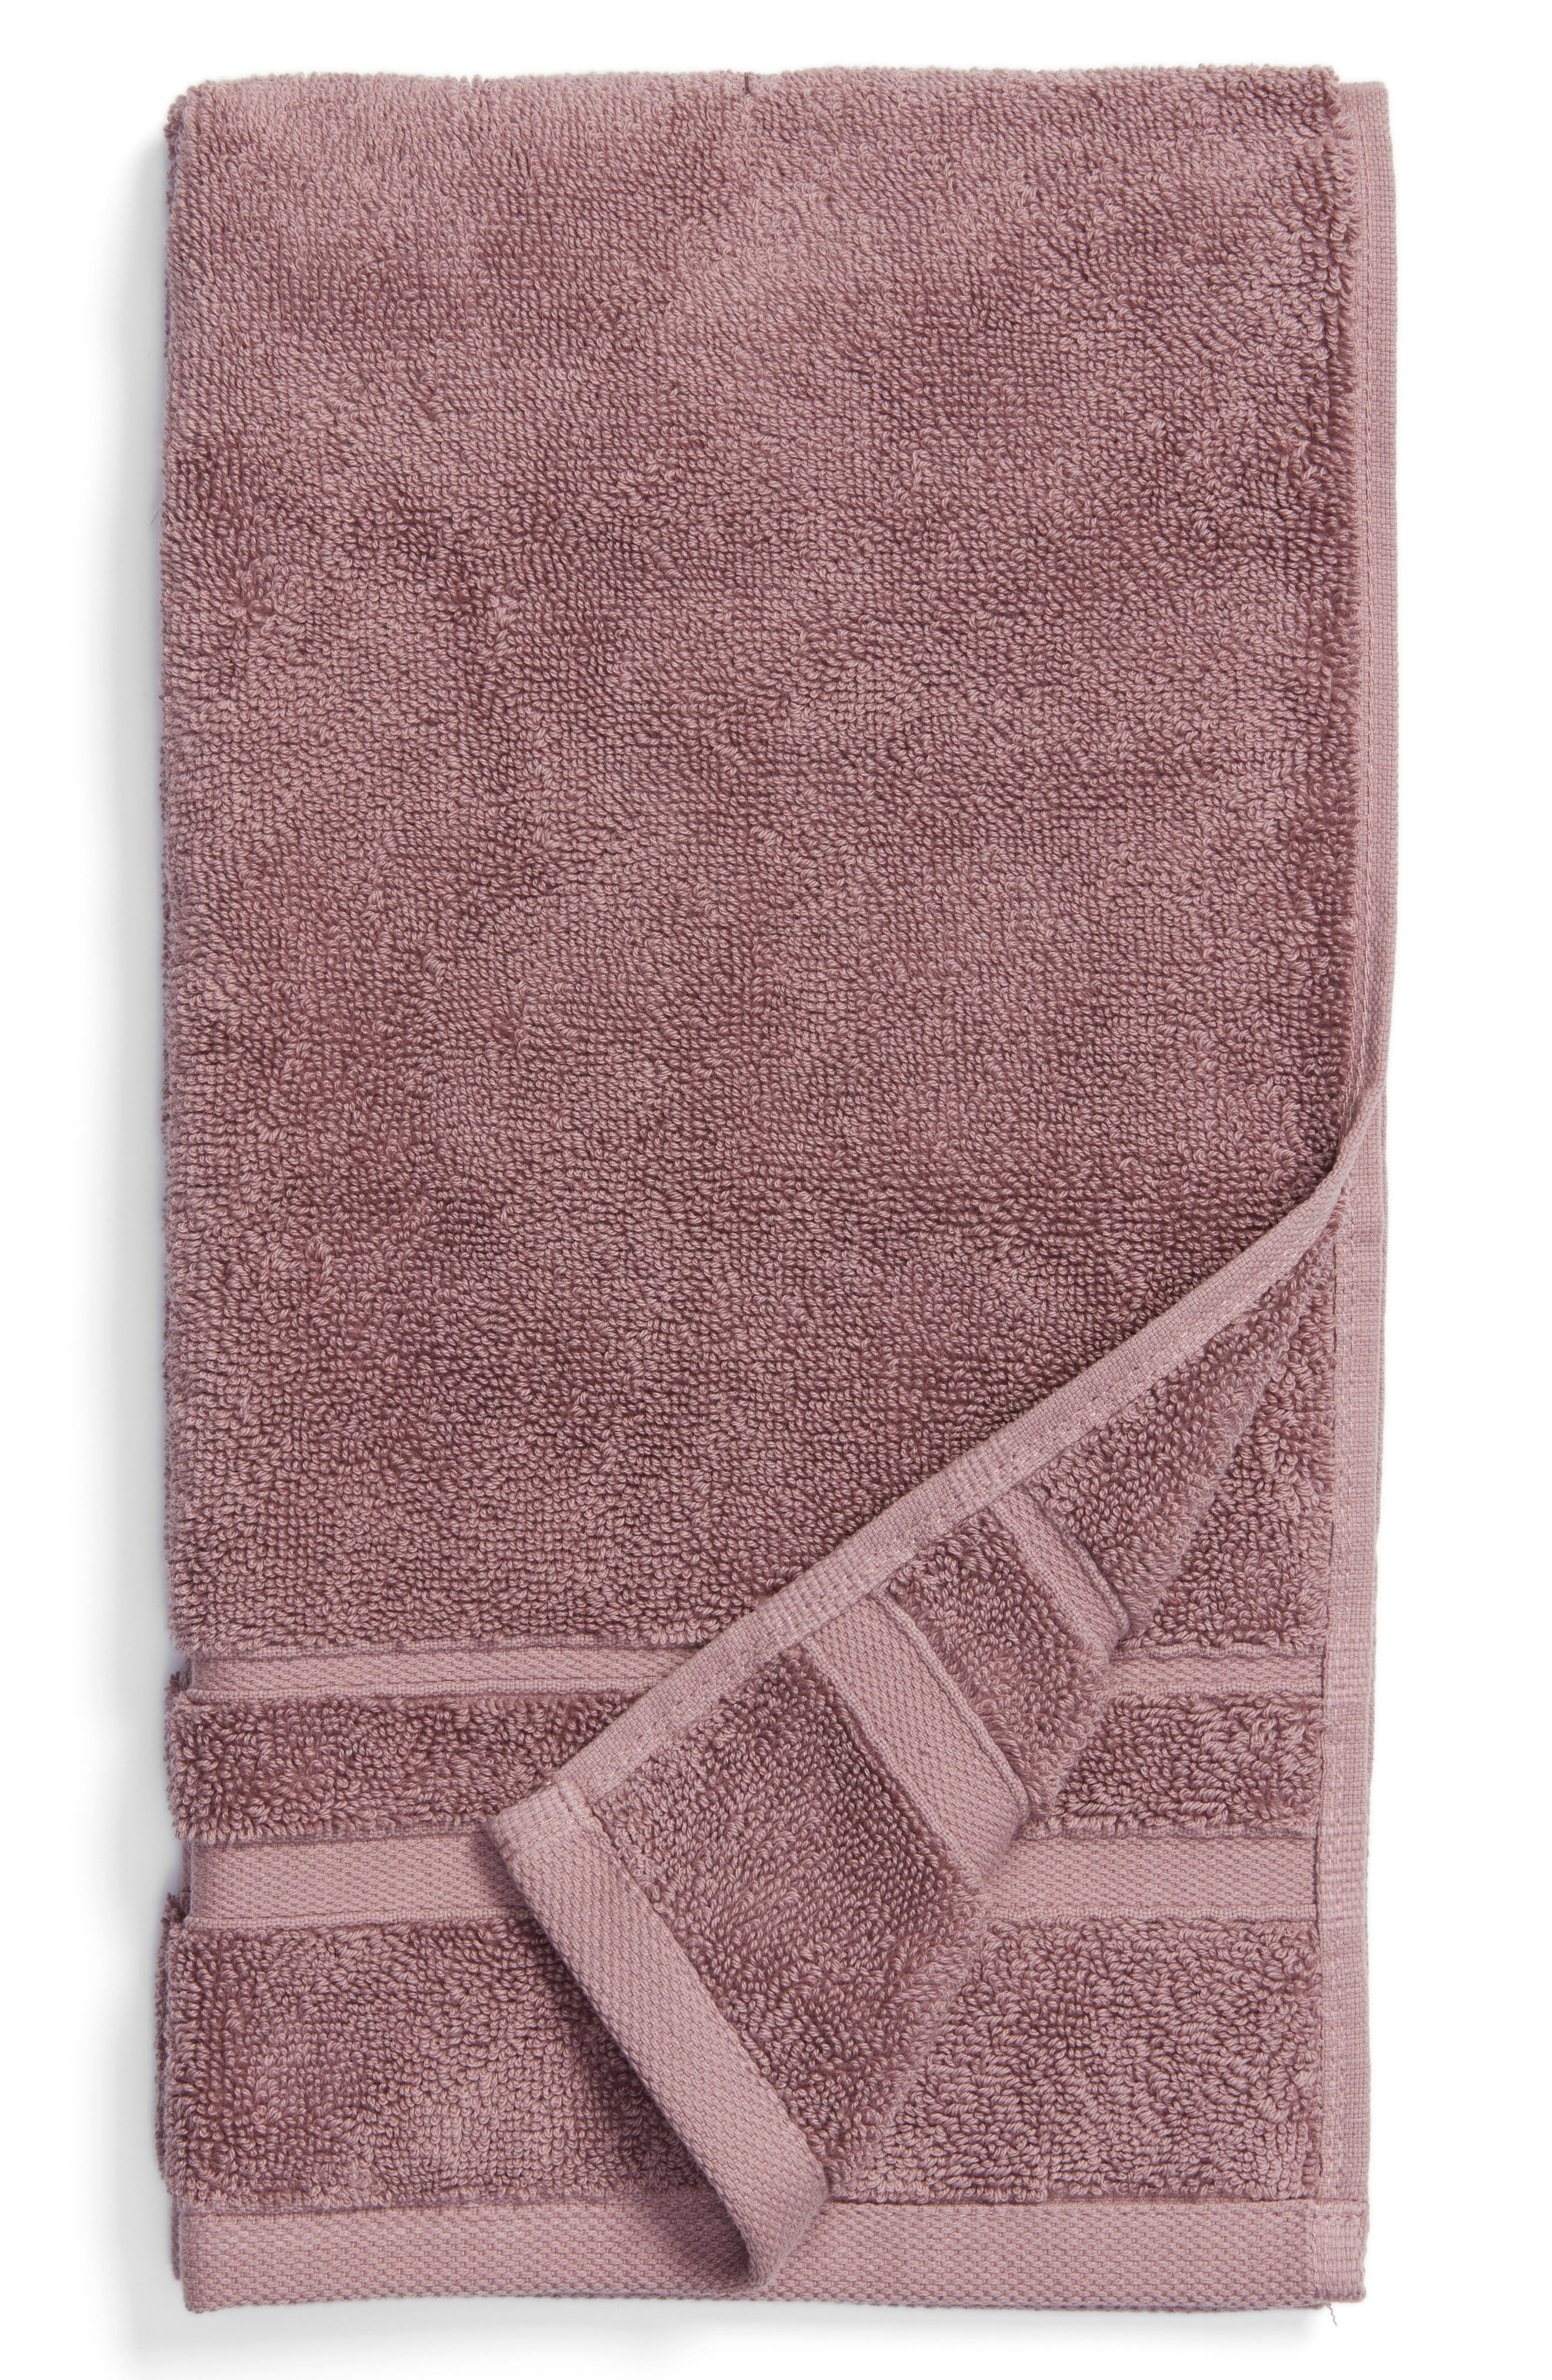 Studio 'Perennial' Combed Turkish Cotton Hand Towel,                         Main,                         color, Mallow